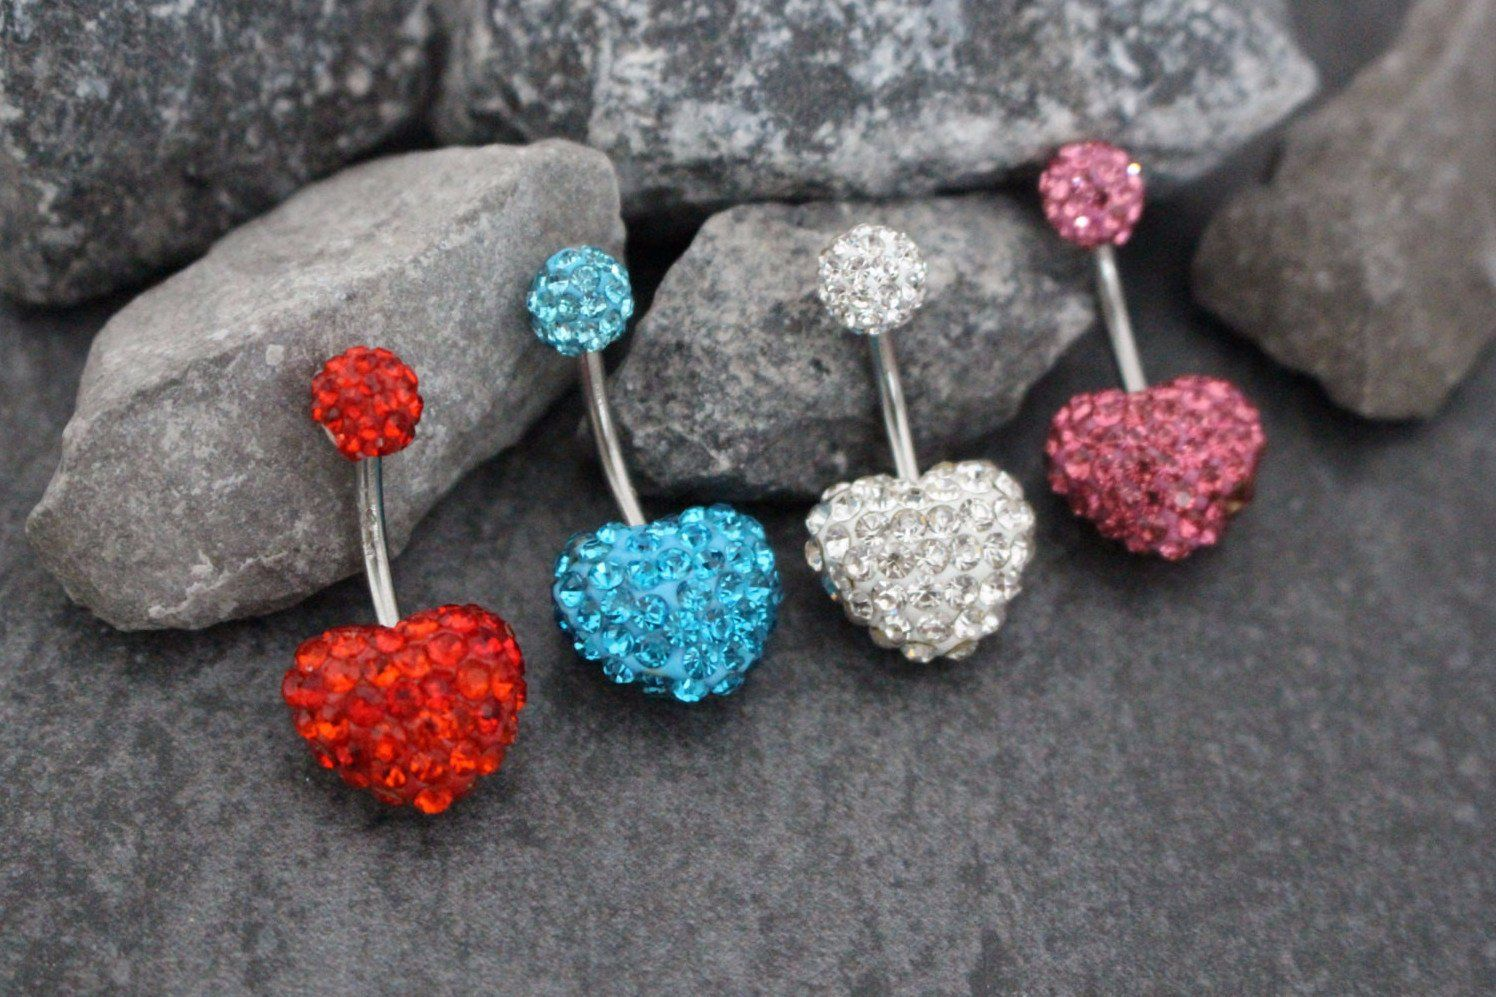 Belly button piercing stud  Heart Ferido Belly Stud in Solid Colors  Products  Pinterest